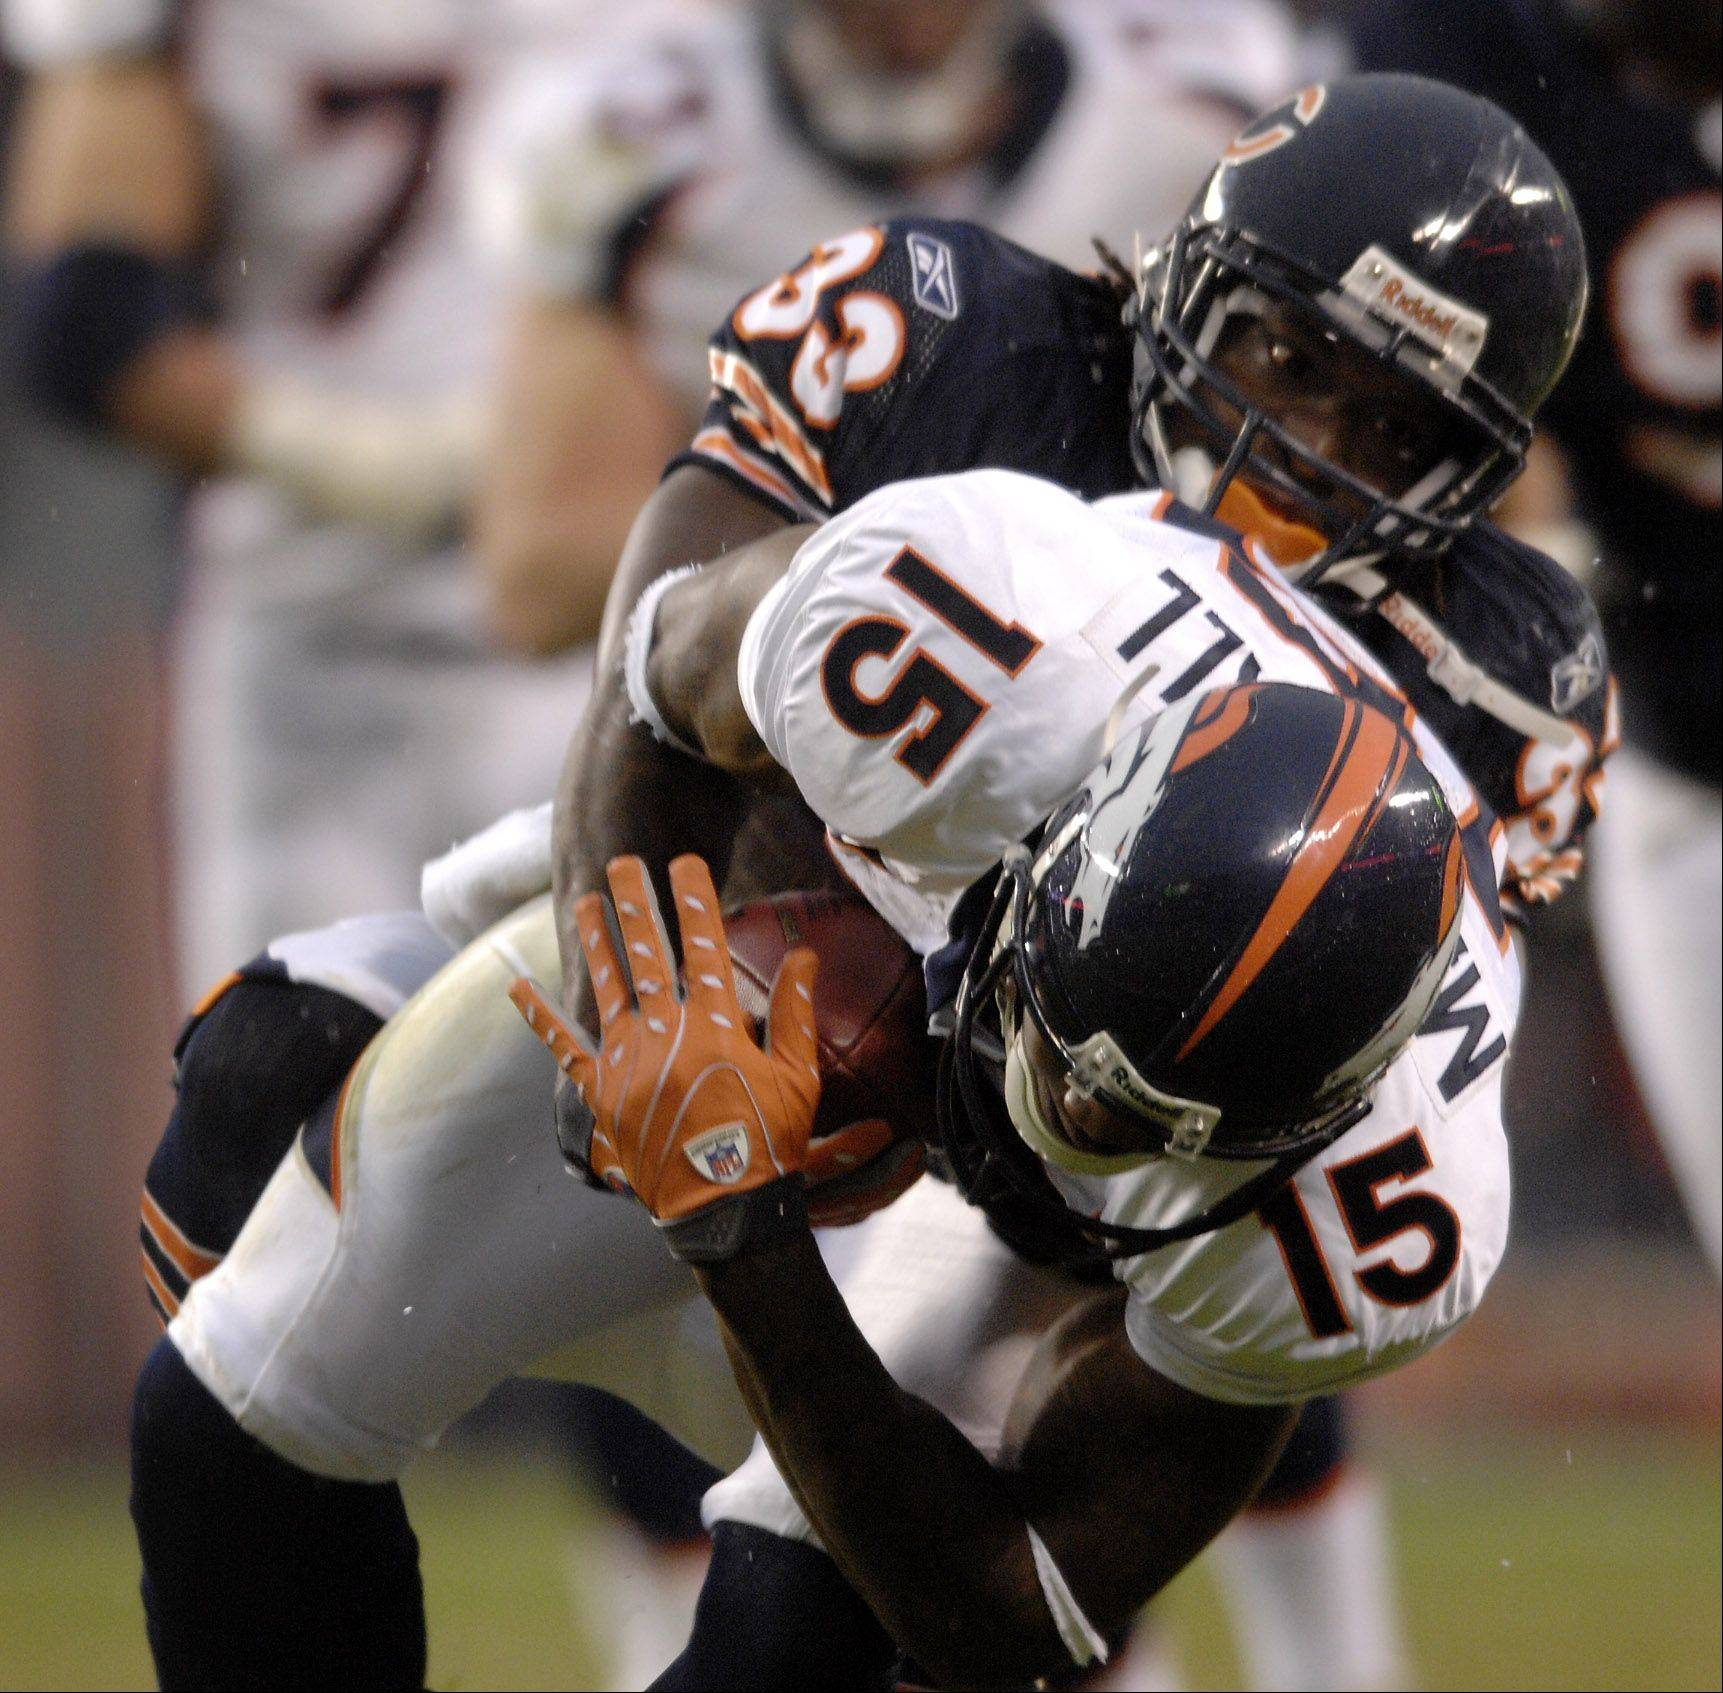 Charles Tillman of Chicago Bears takes down Brandon Marshall of the Denver Broncos at Soldier Field in Chicago.